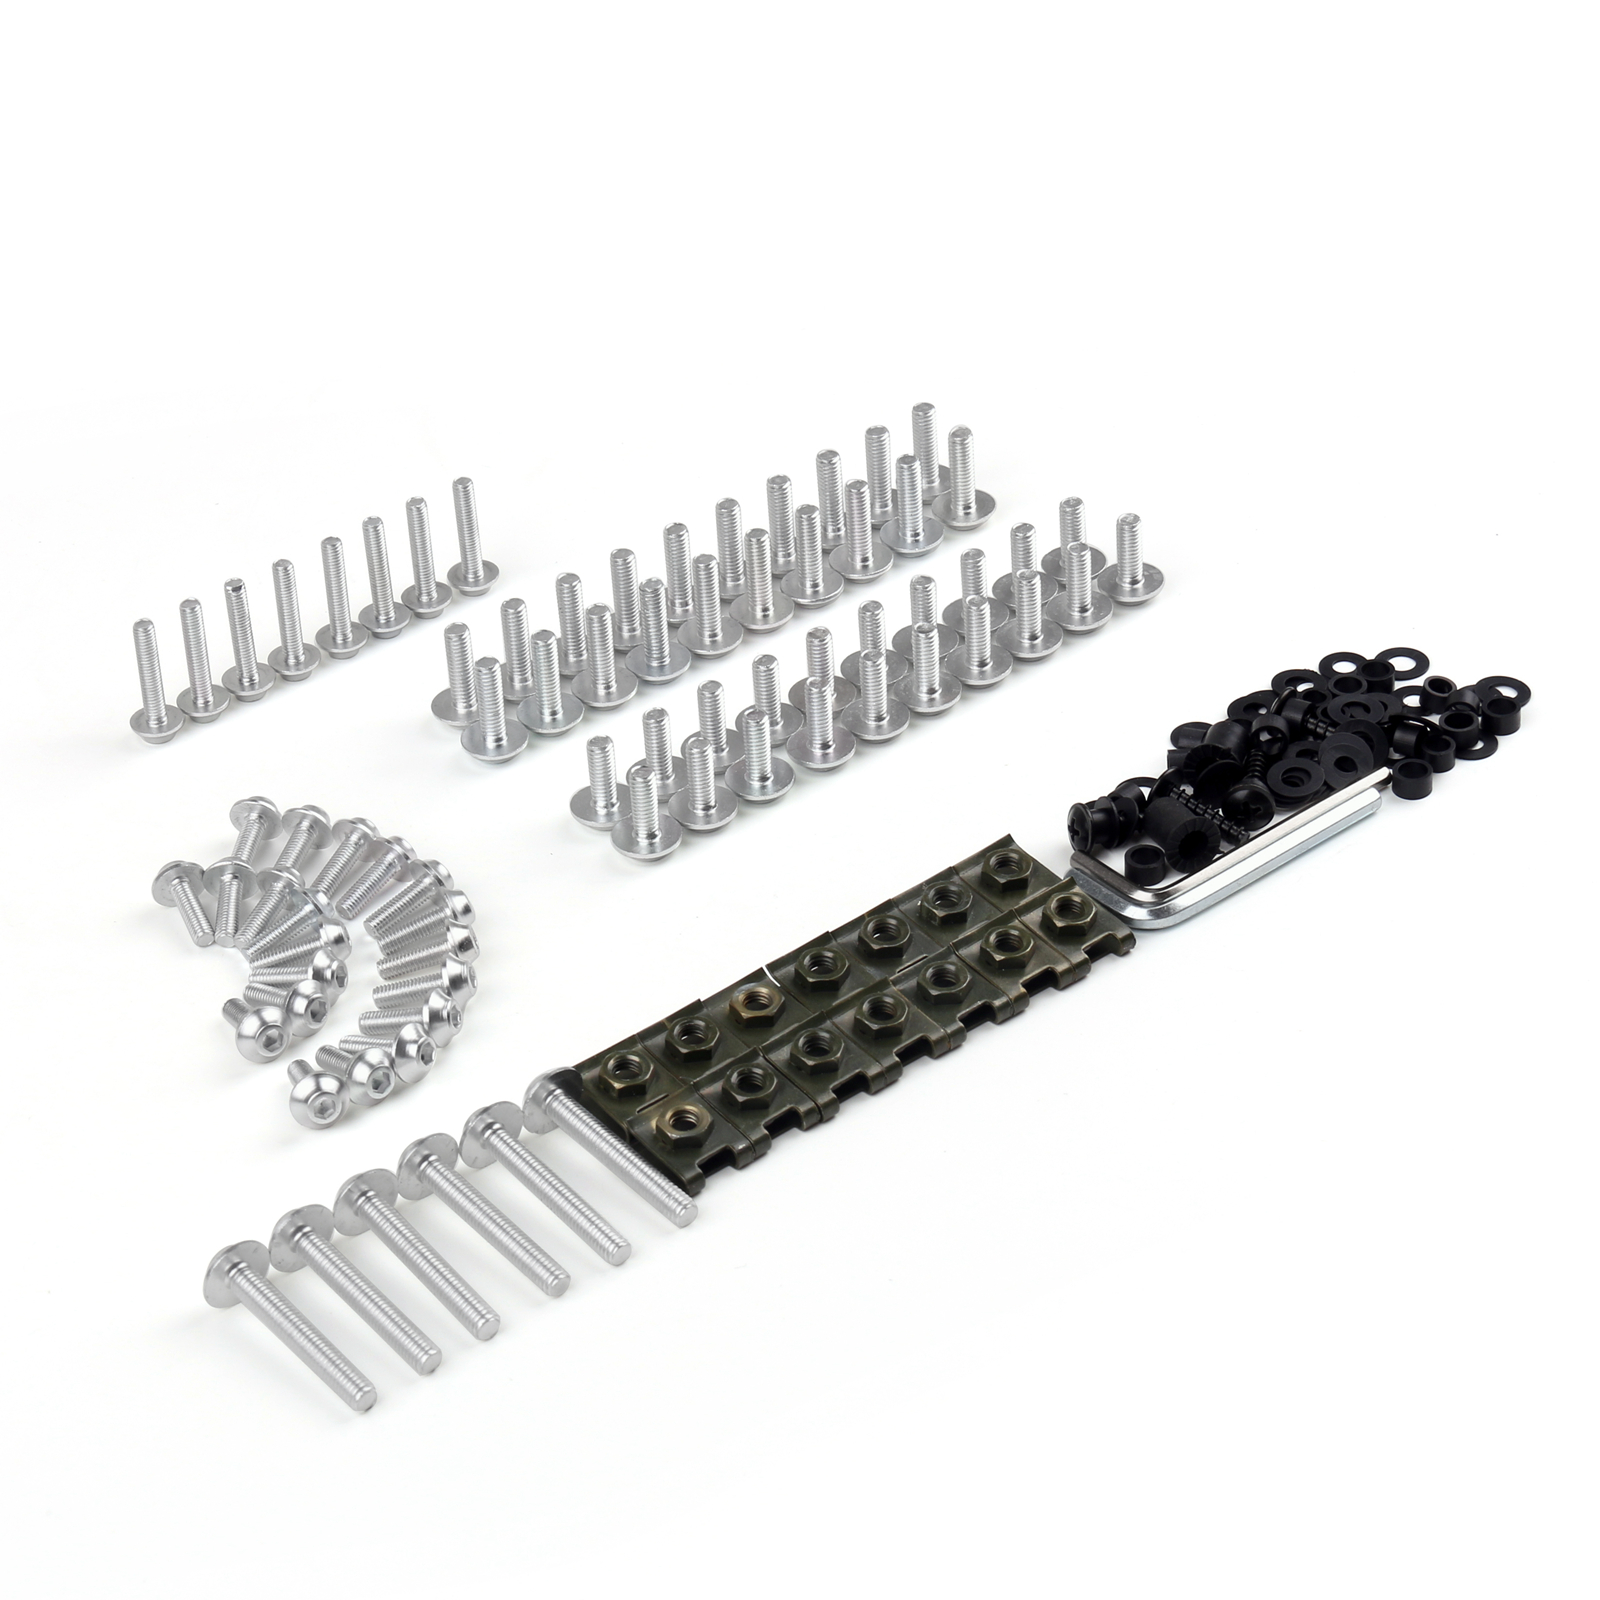 New Carenage Boulons Vis Fixations Kit Spike Bolts Pour